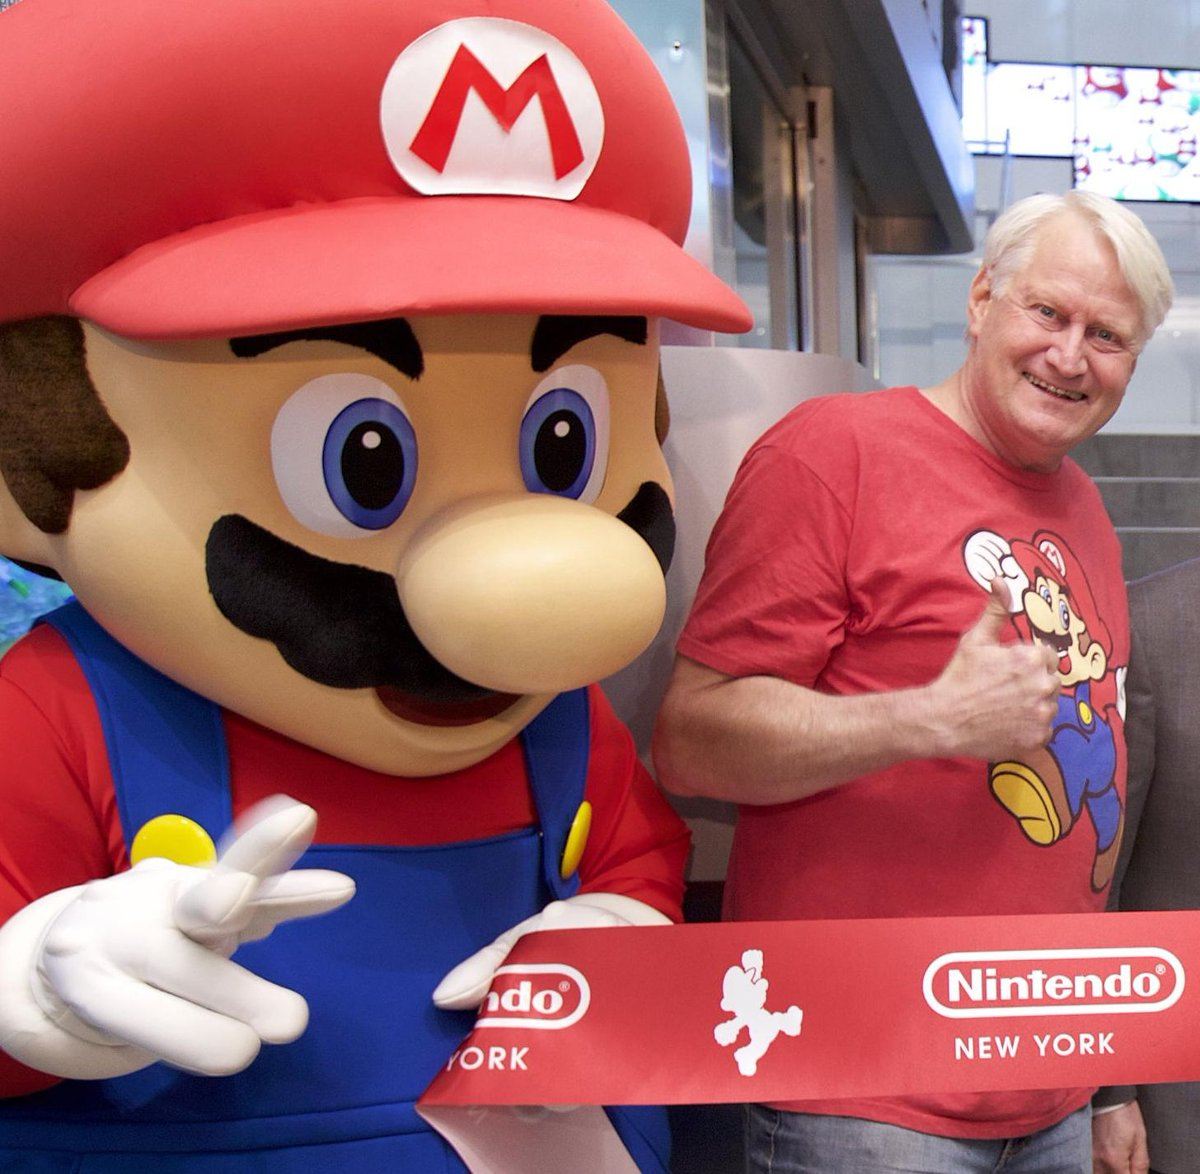 Super Smash Bros. Ultimate is Charles Martinet's 100th credit as Mario https://t.co/CkzlD7YyLX